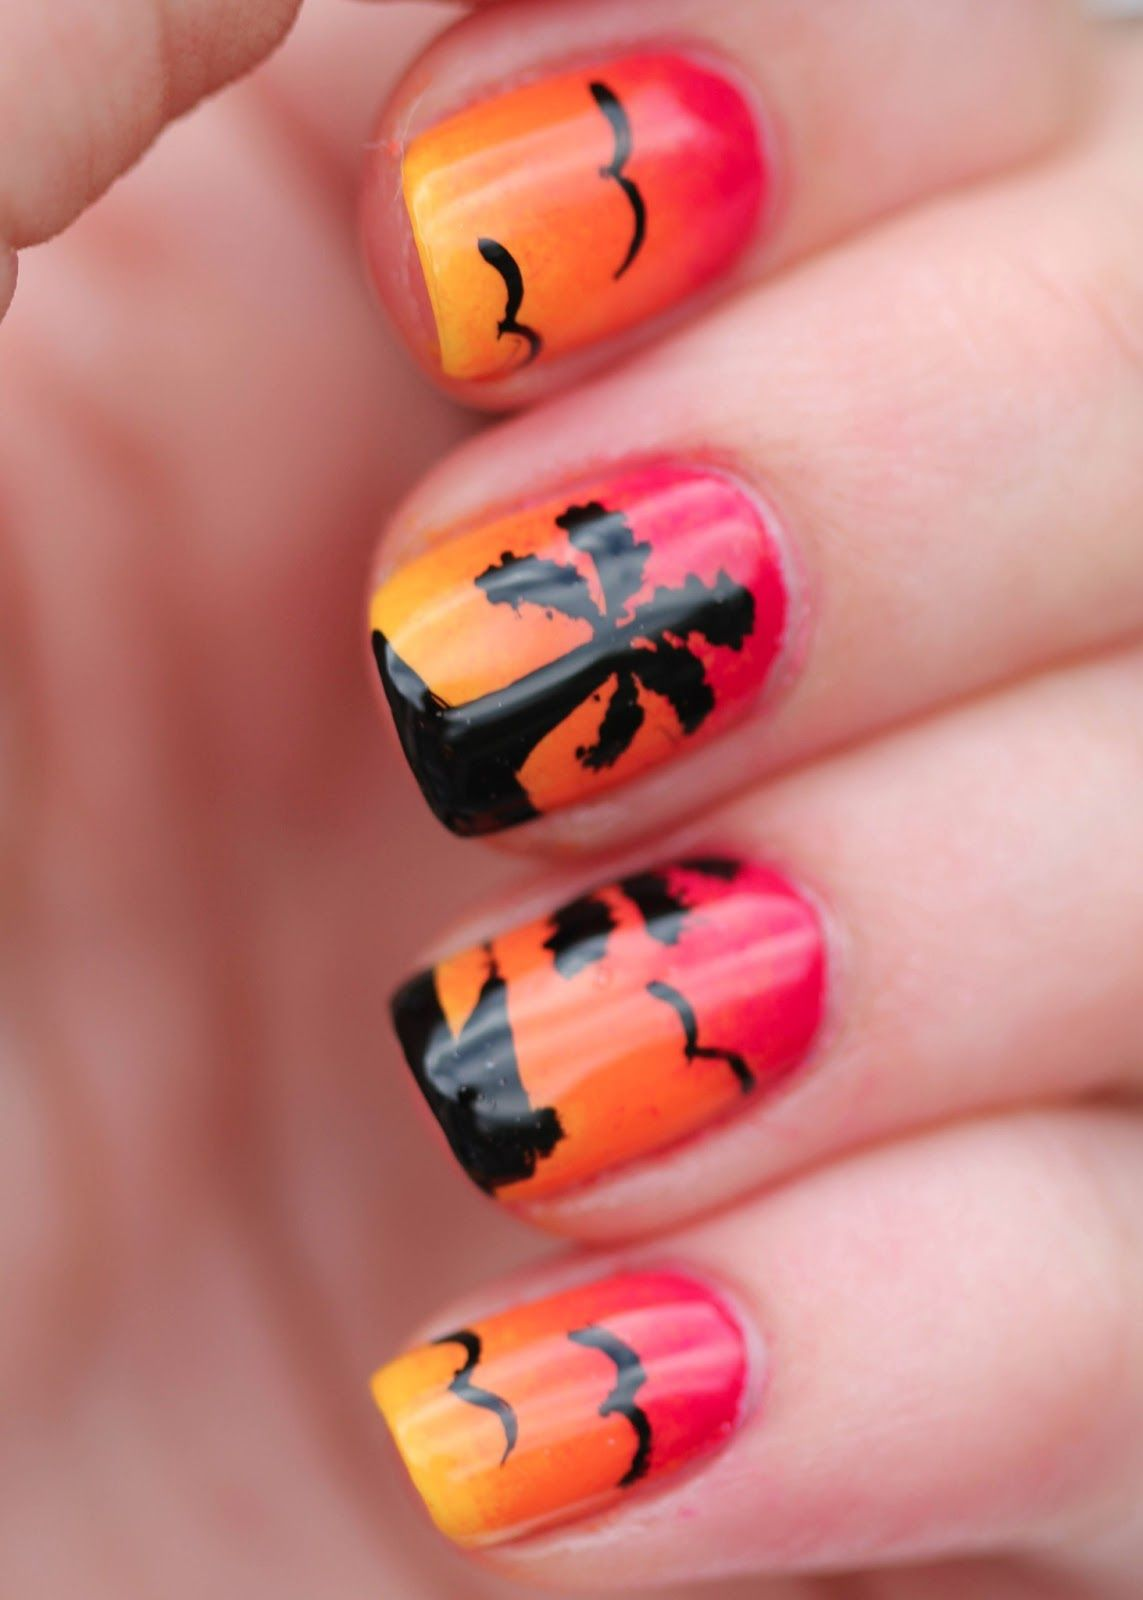 Sunset nail art with palm trees, birds and boat - Sunset Nail Art With Palm Trees, Birds And Boat Nails XII